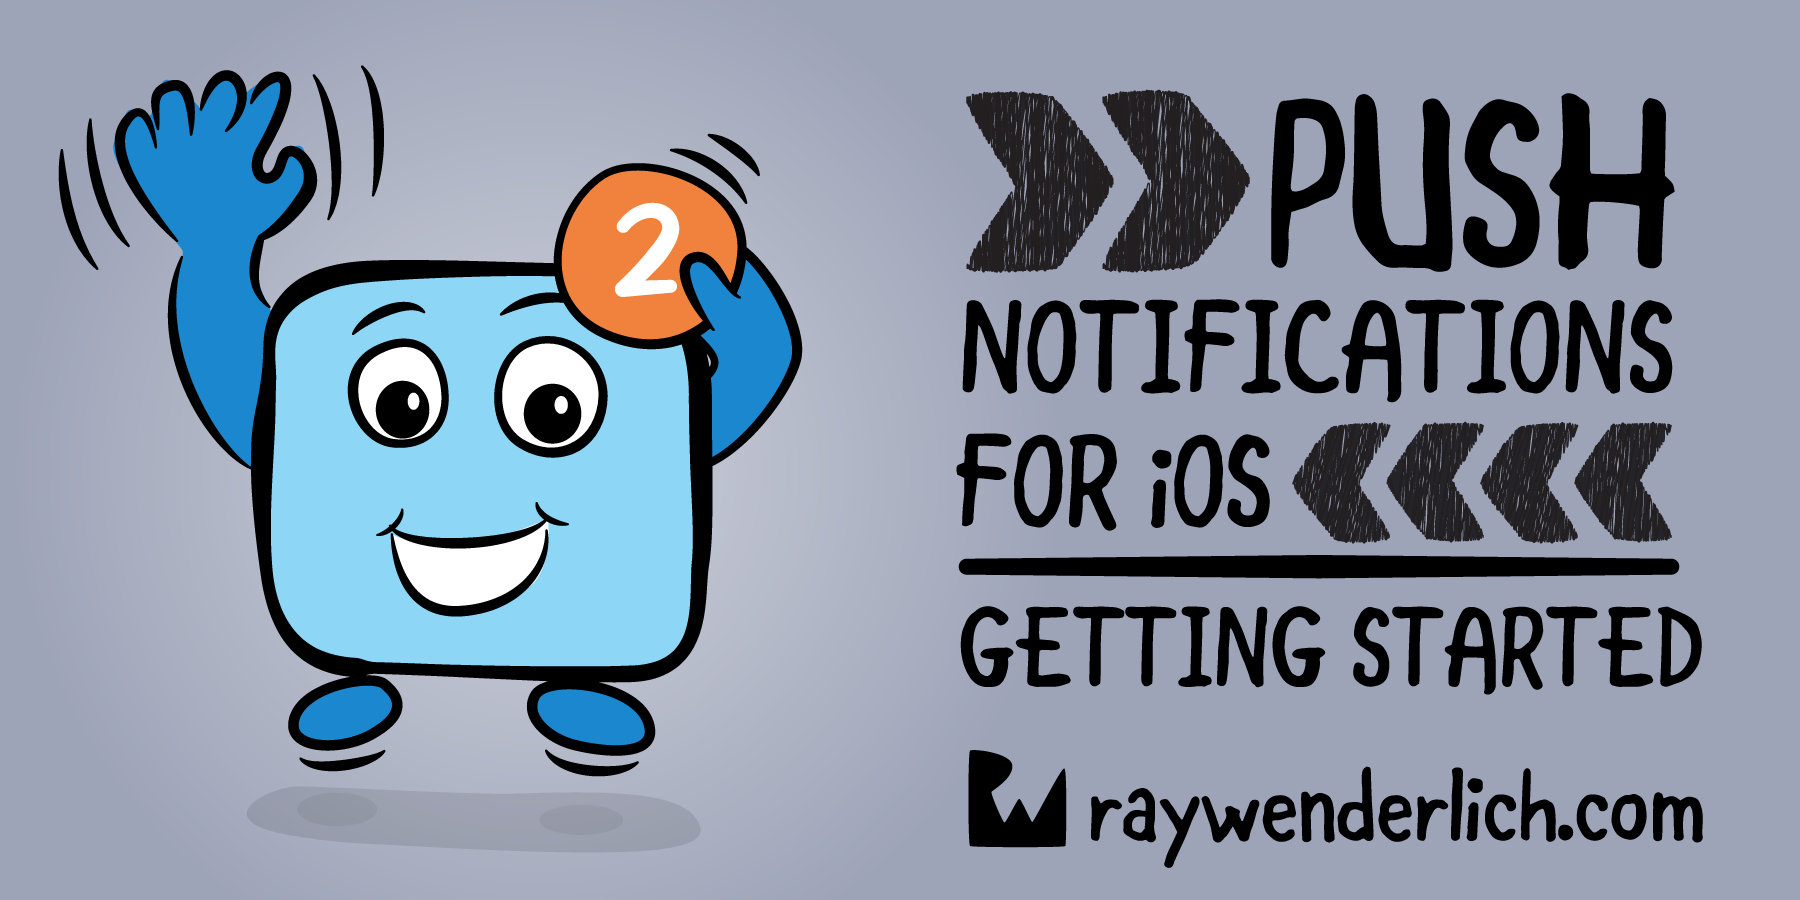 Push Notifications Tutorial: Getting Started | raywenderlich com